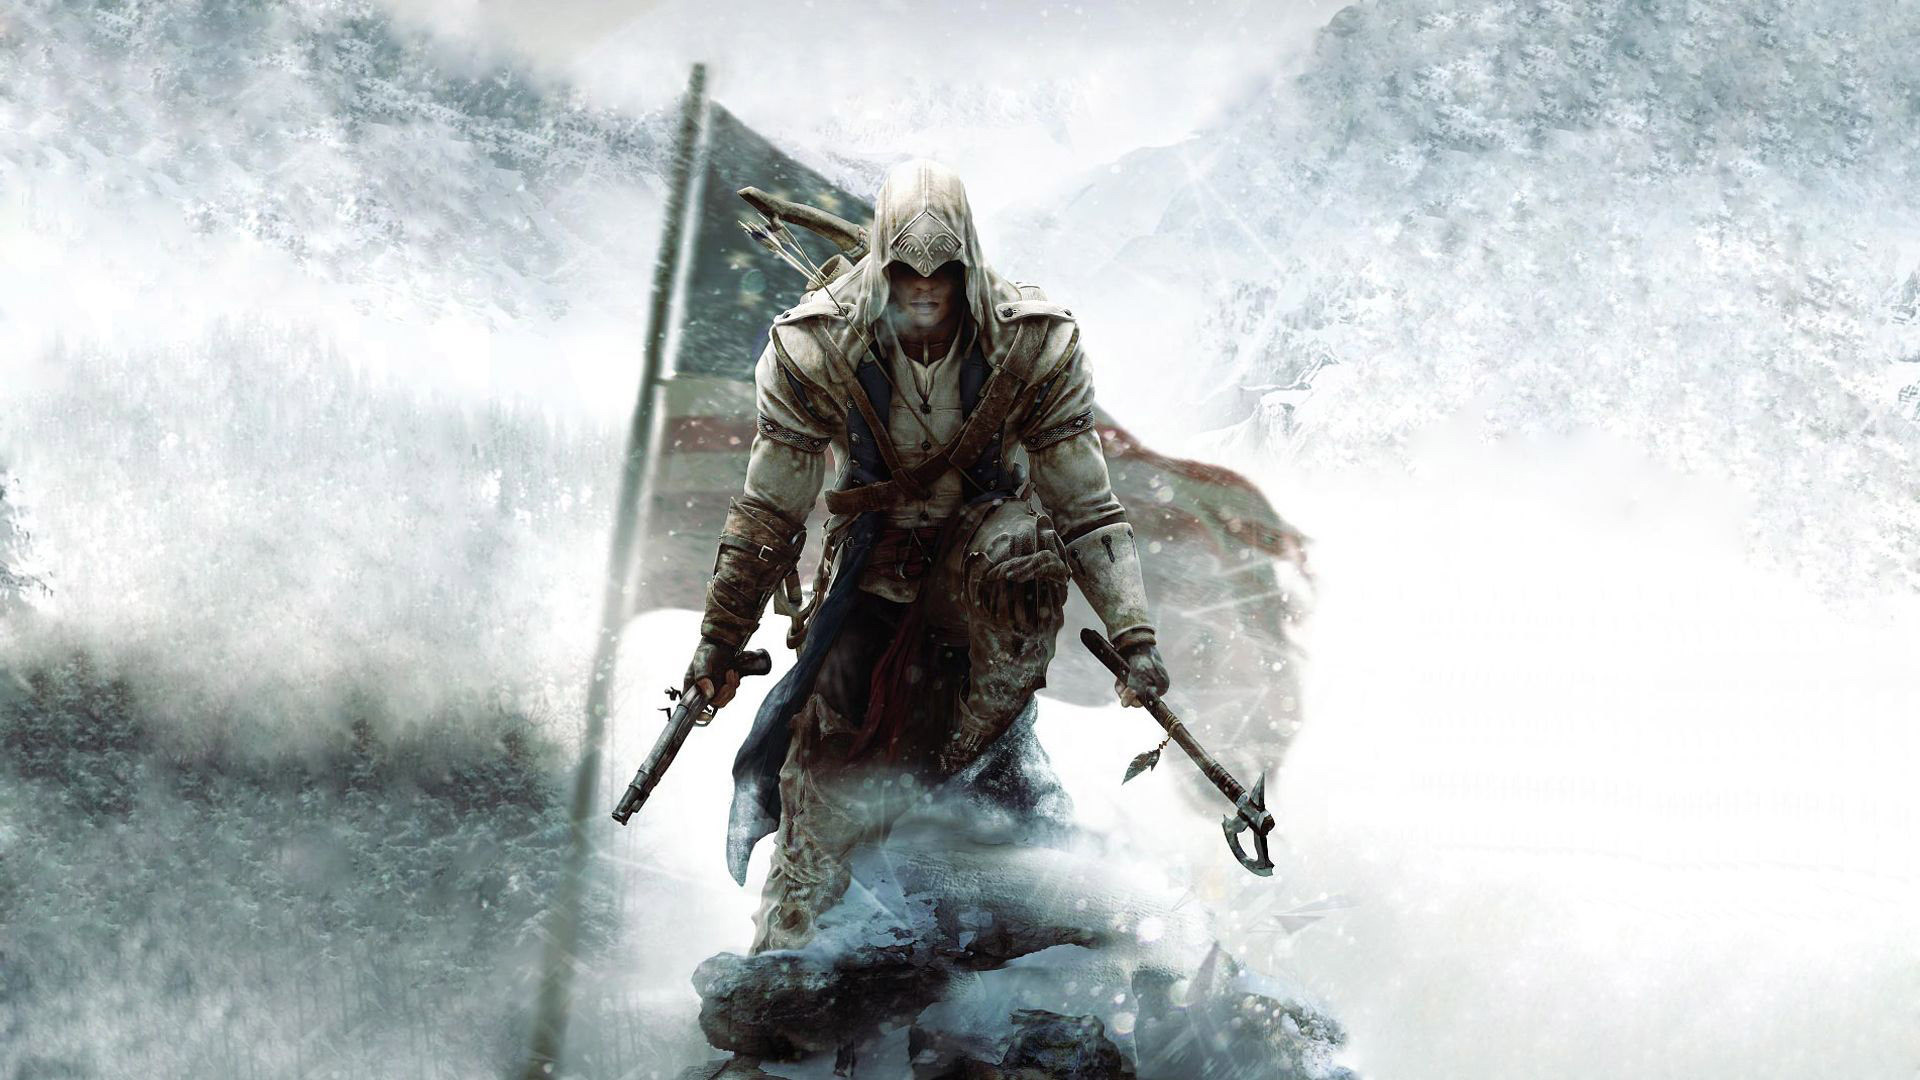 Assassins Creed 3 Wallpaper Hd Posted By Samantha Cunningham